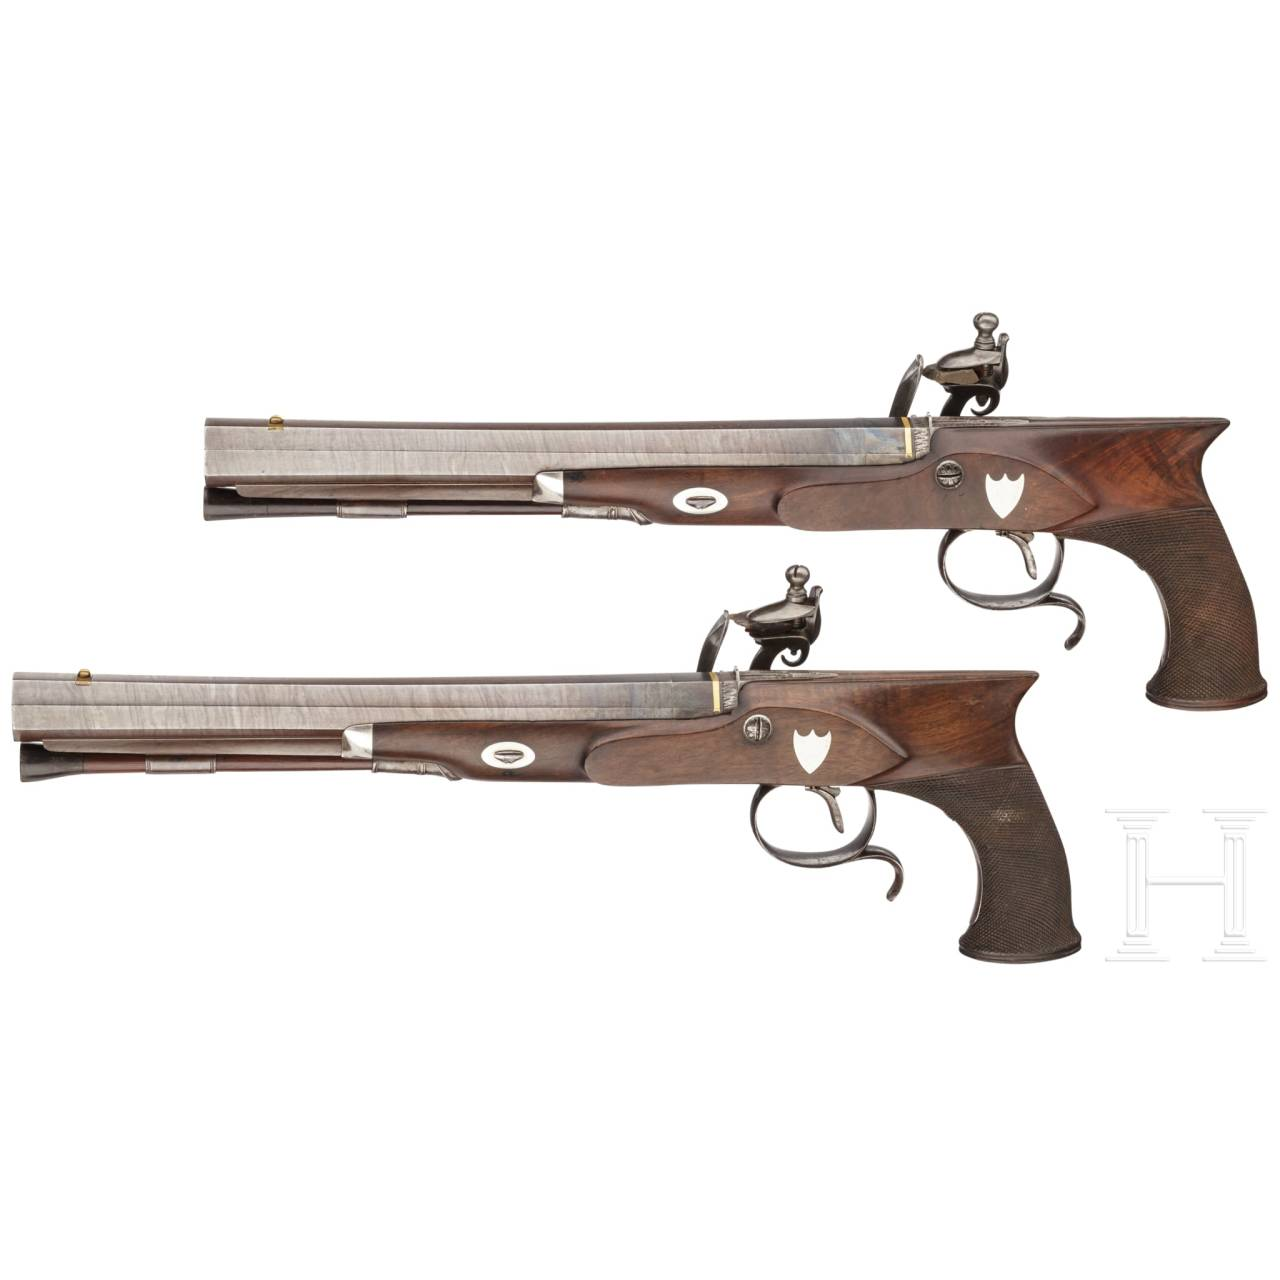 A cased pair of flintlock pistols with a detachable stock, H. W. Mortimer & Co. of London, circa 1810